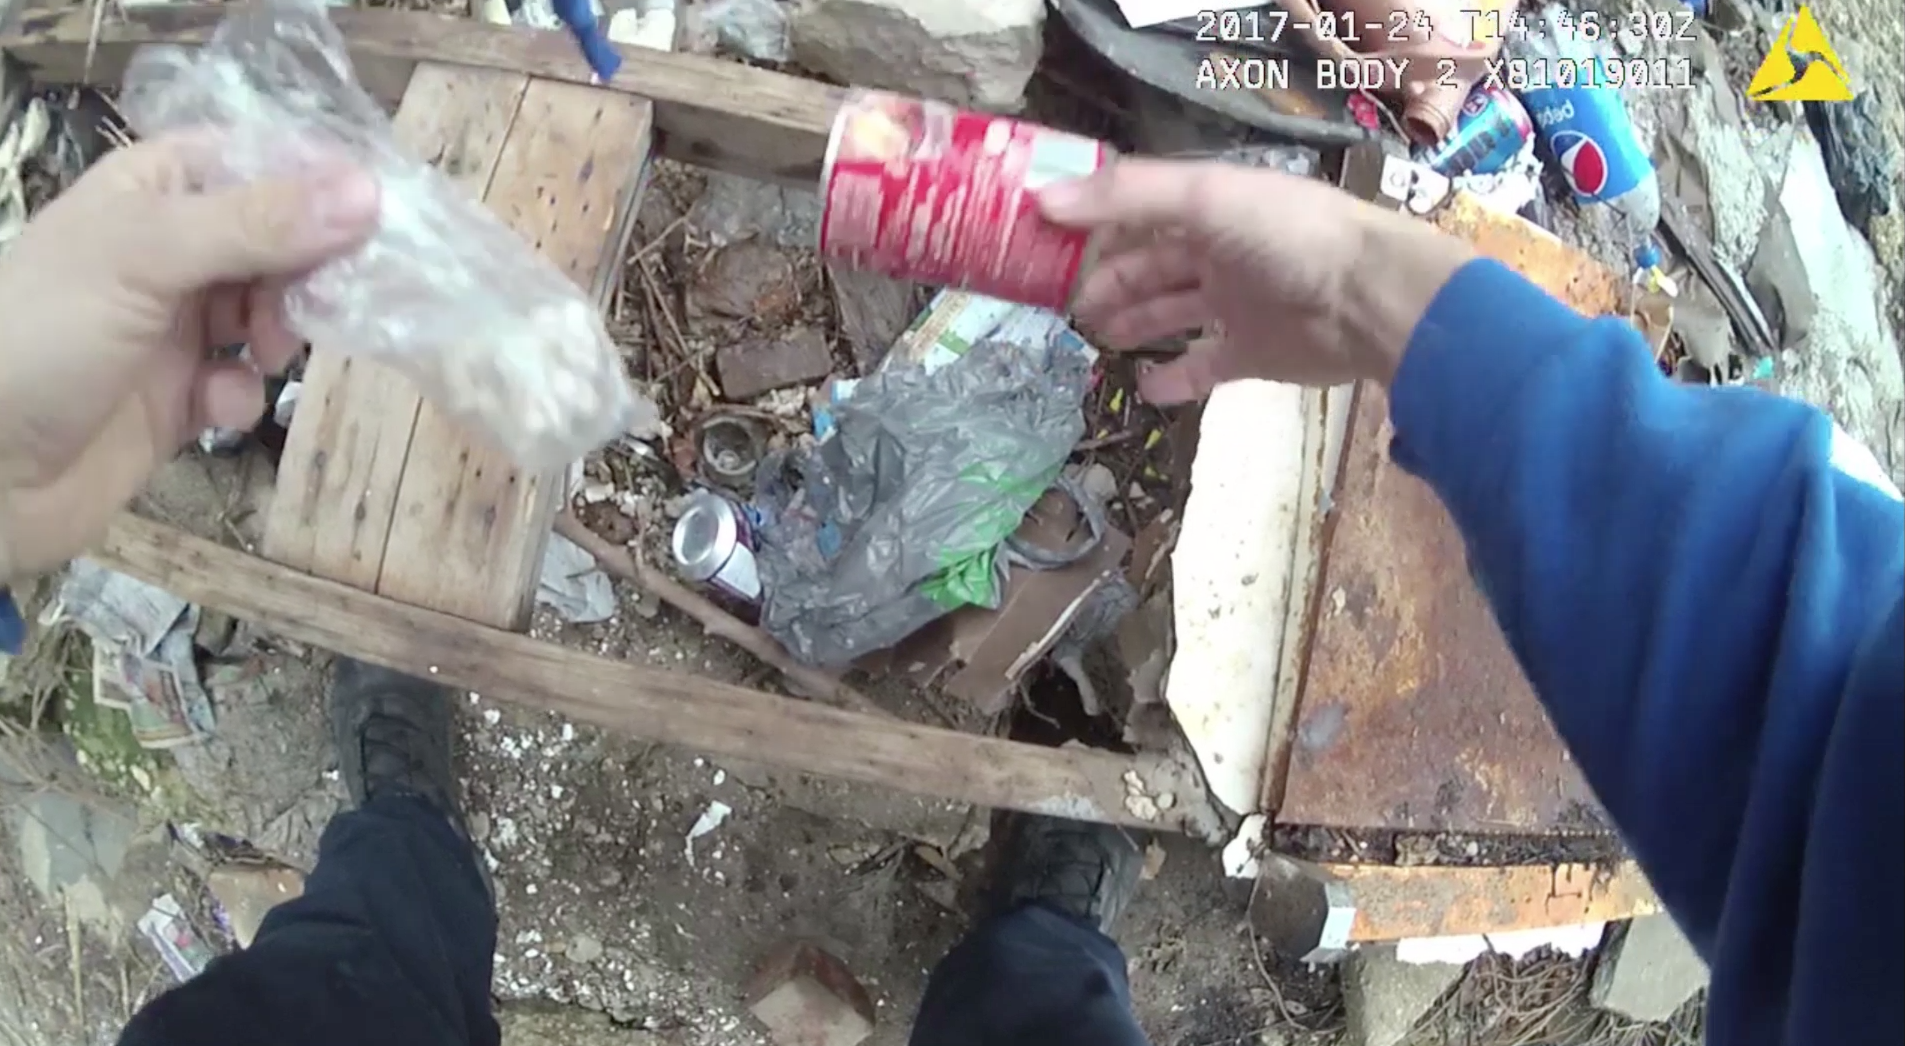 Body camera footage shows officer planting drugs, public defender